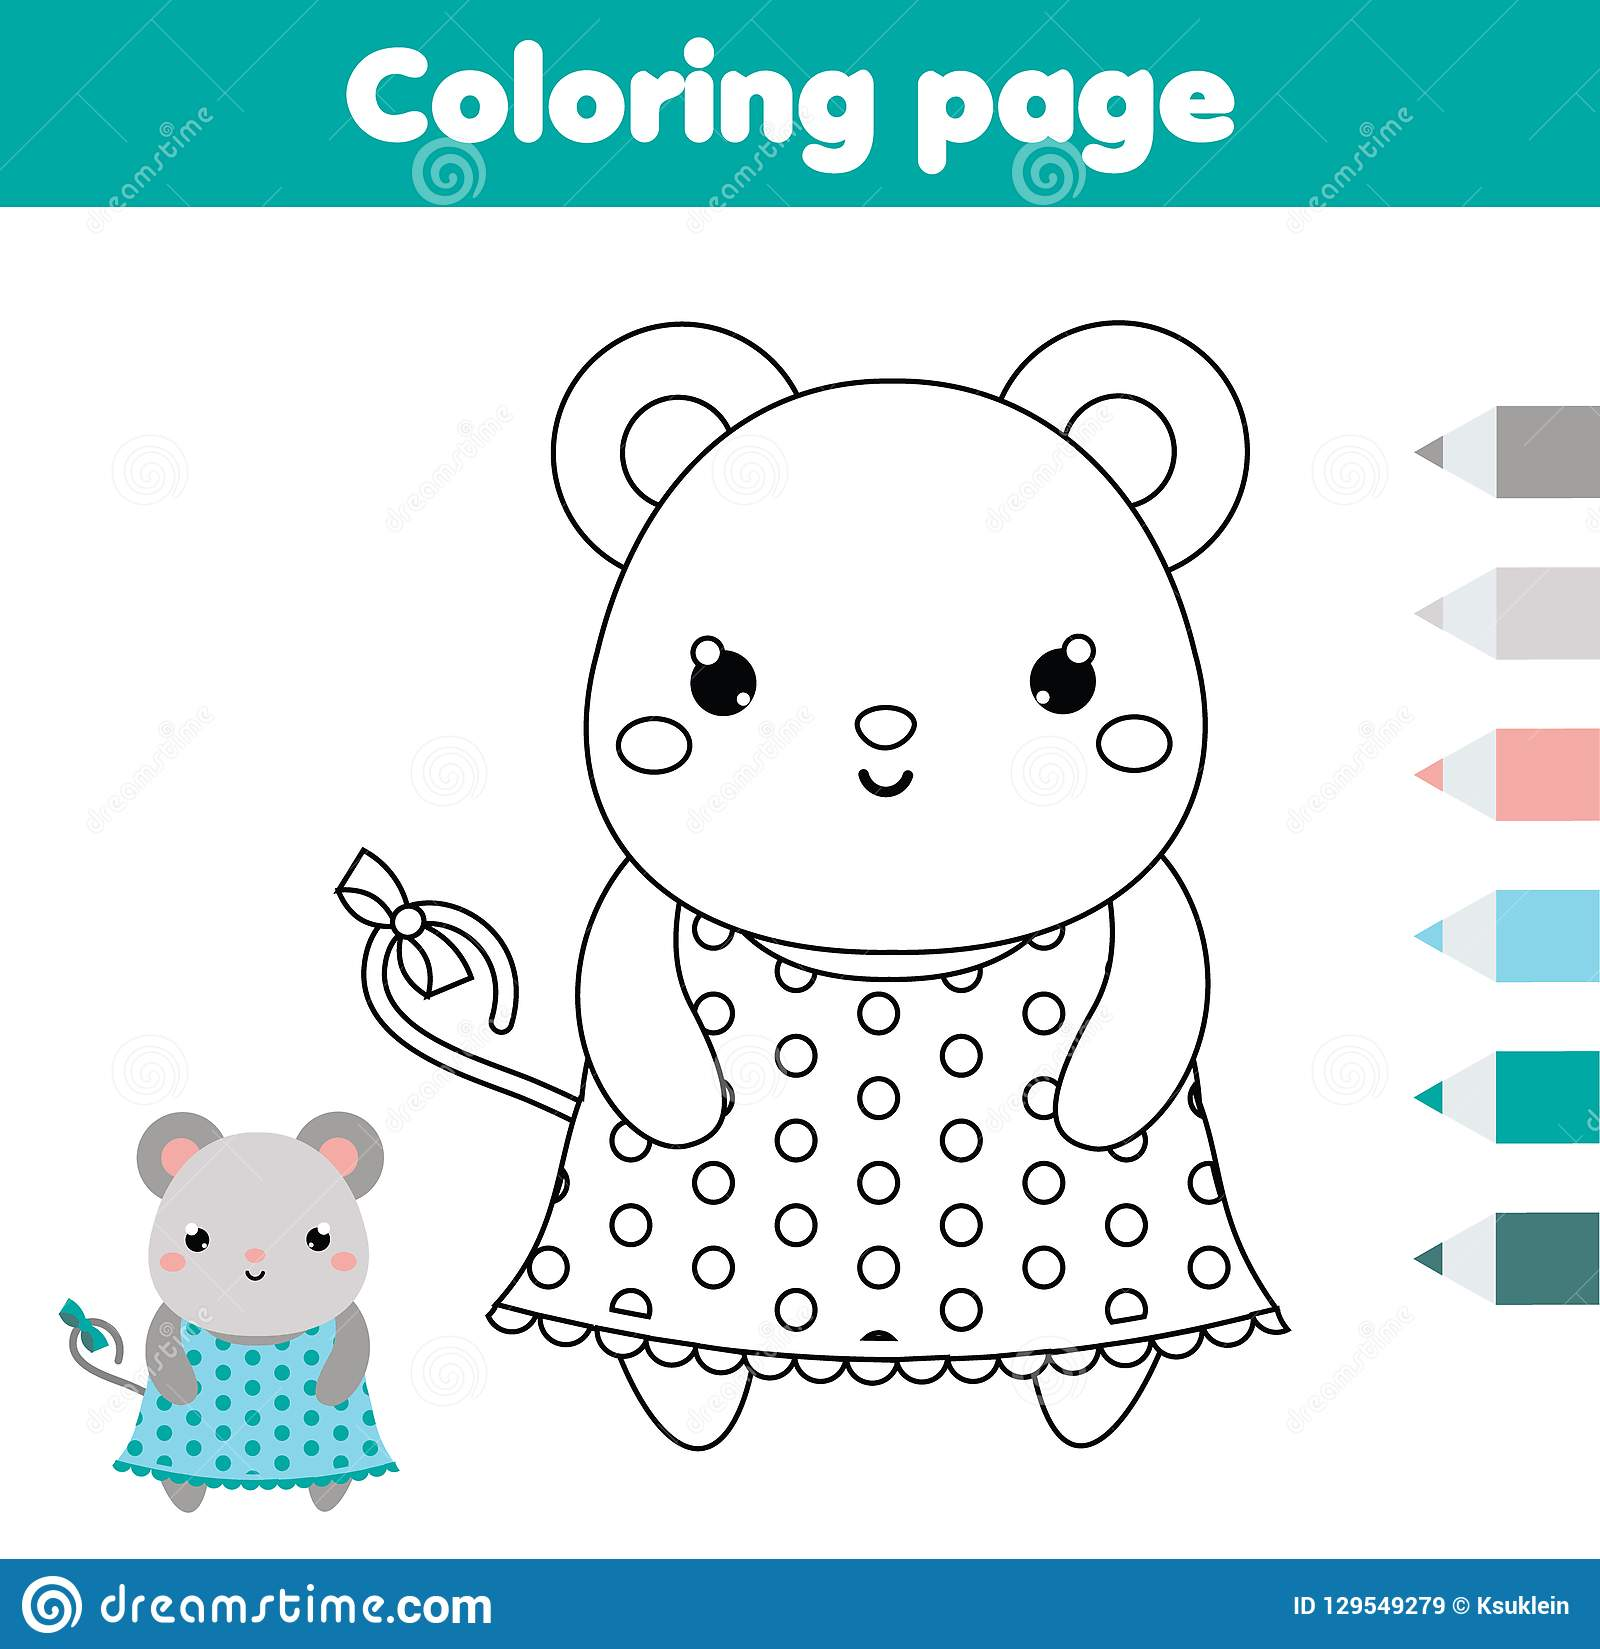 Coloring Page With Mouse Drawing Kids Activity Printable